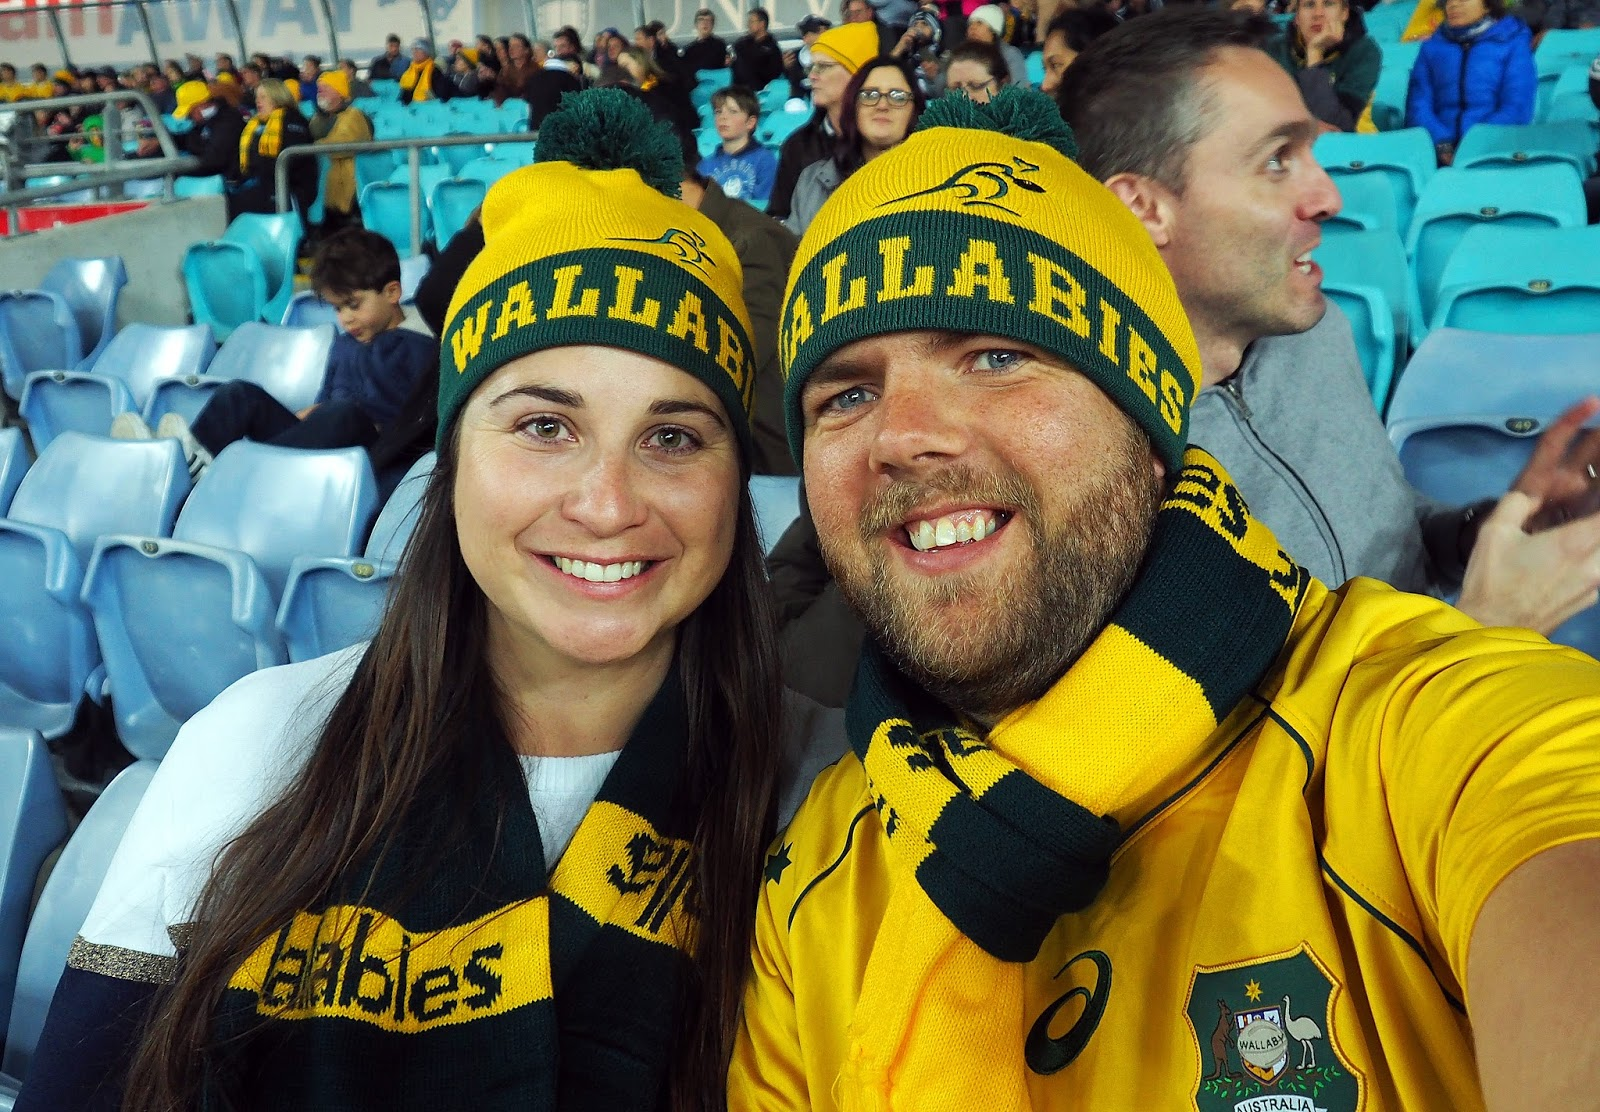 Simone and Dan at Bledisloe Cup